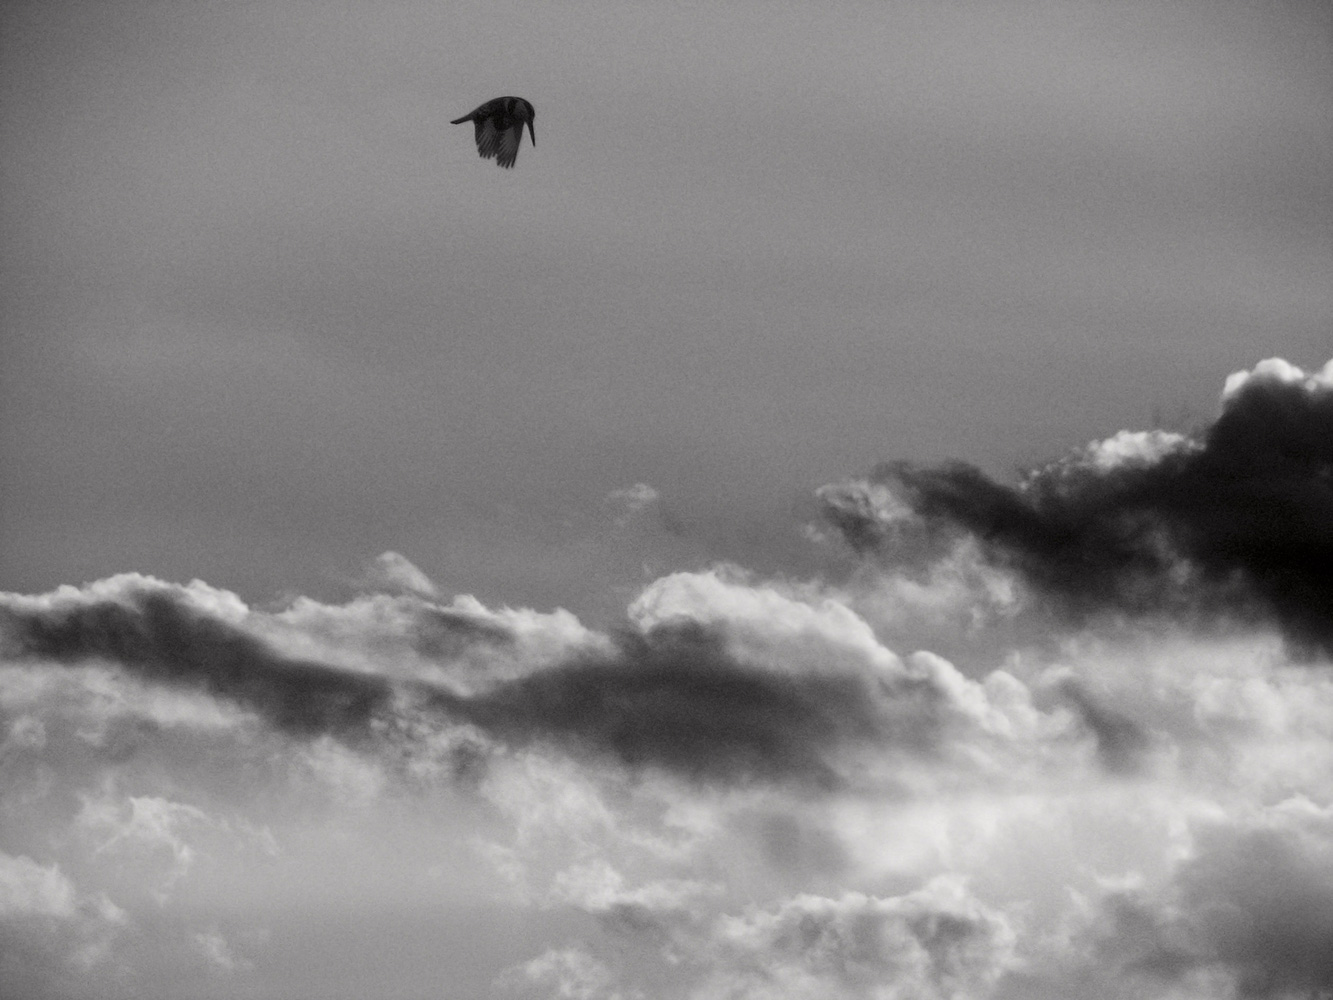 Pied Kingfisher above the clouds